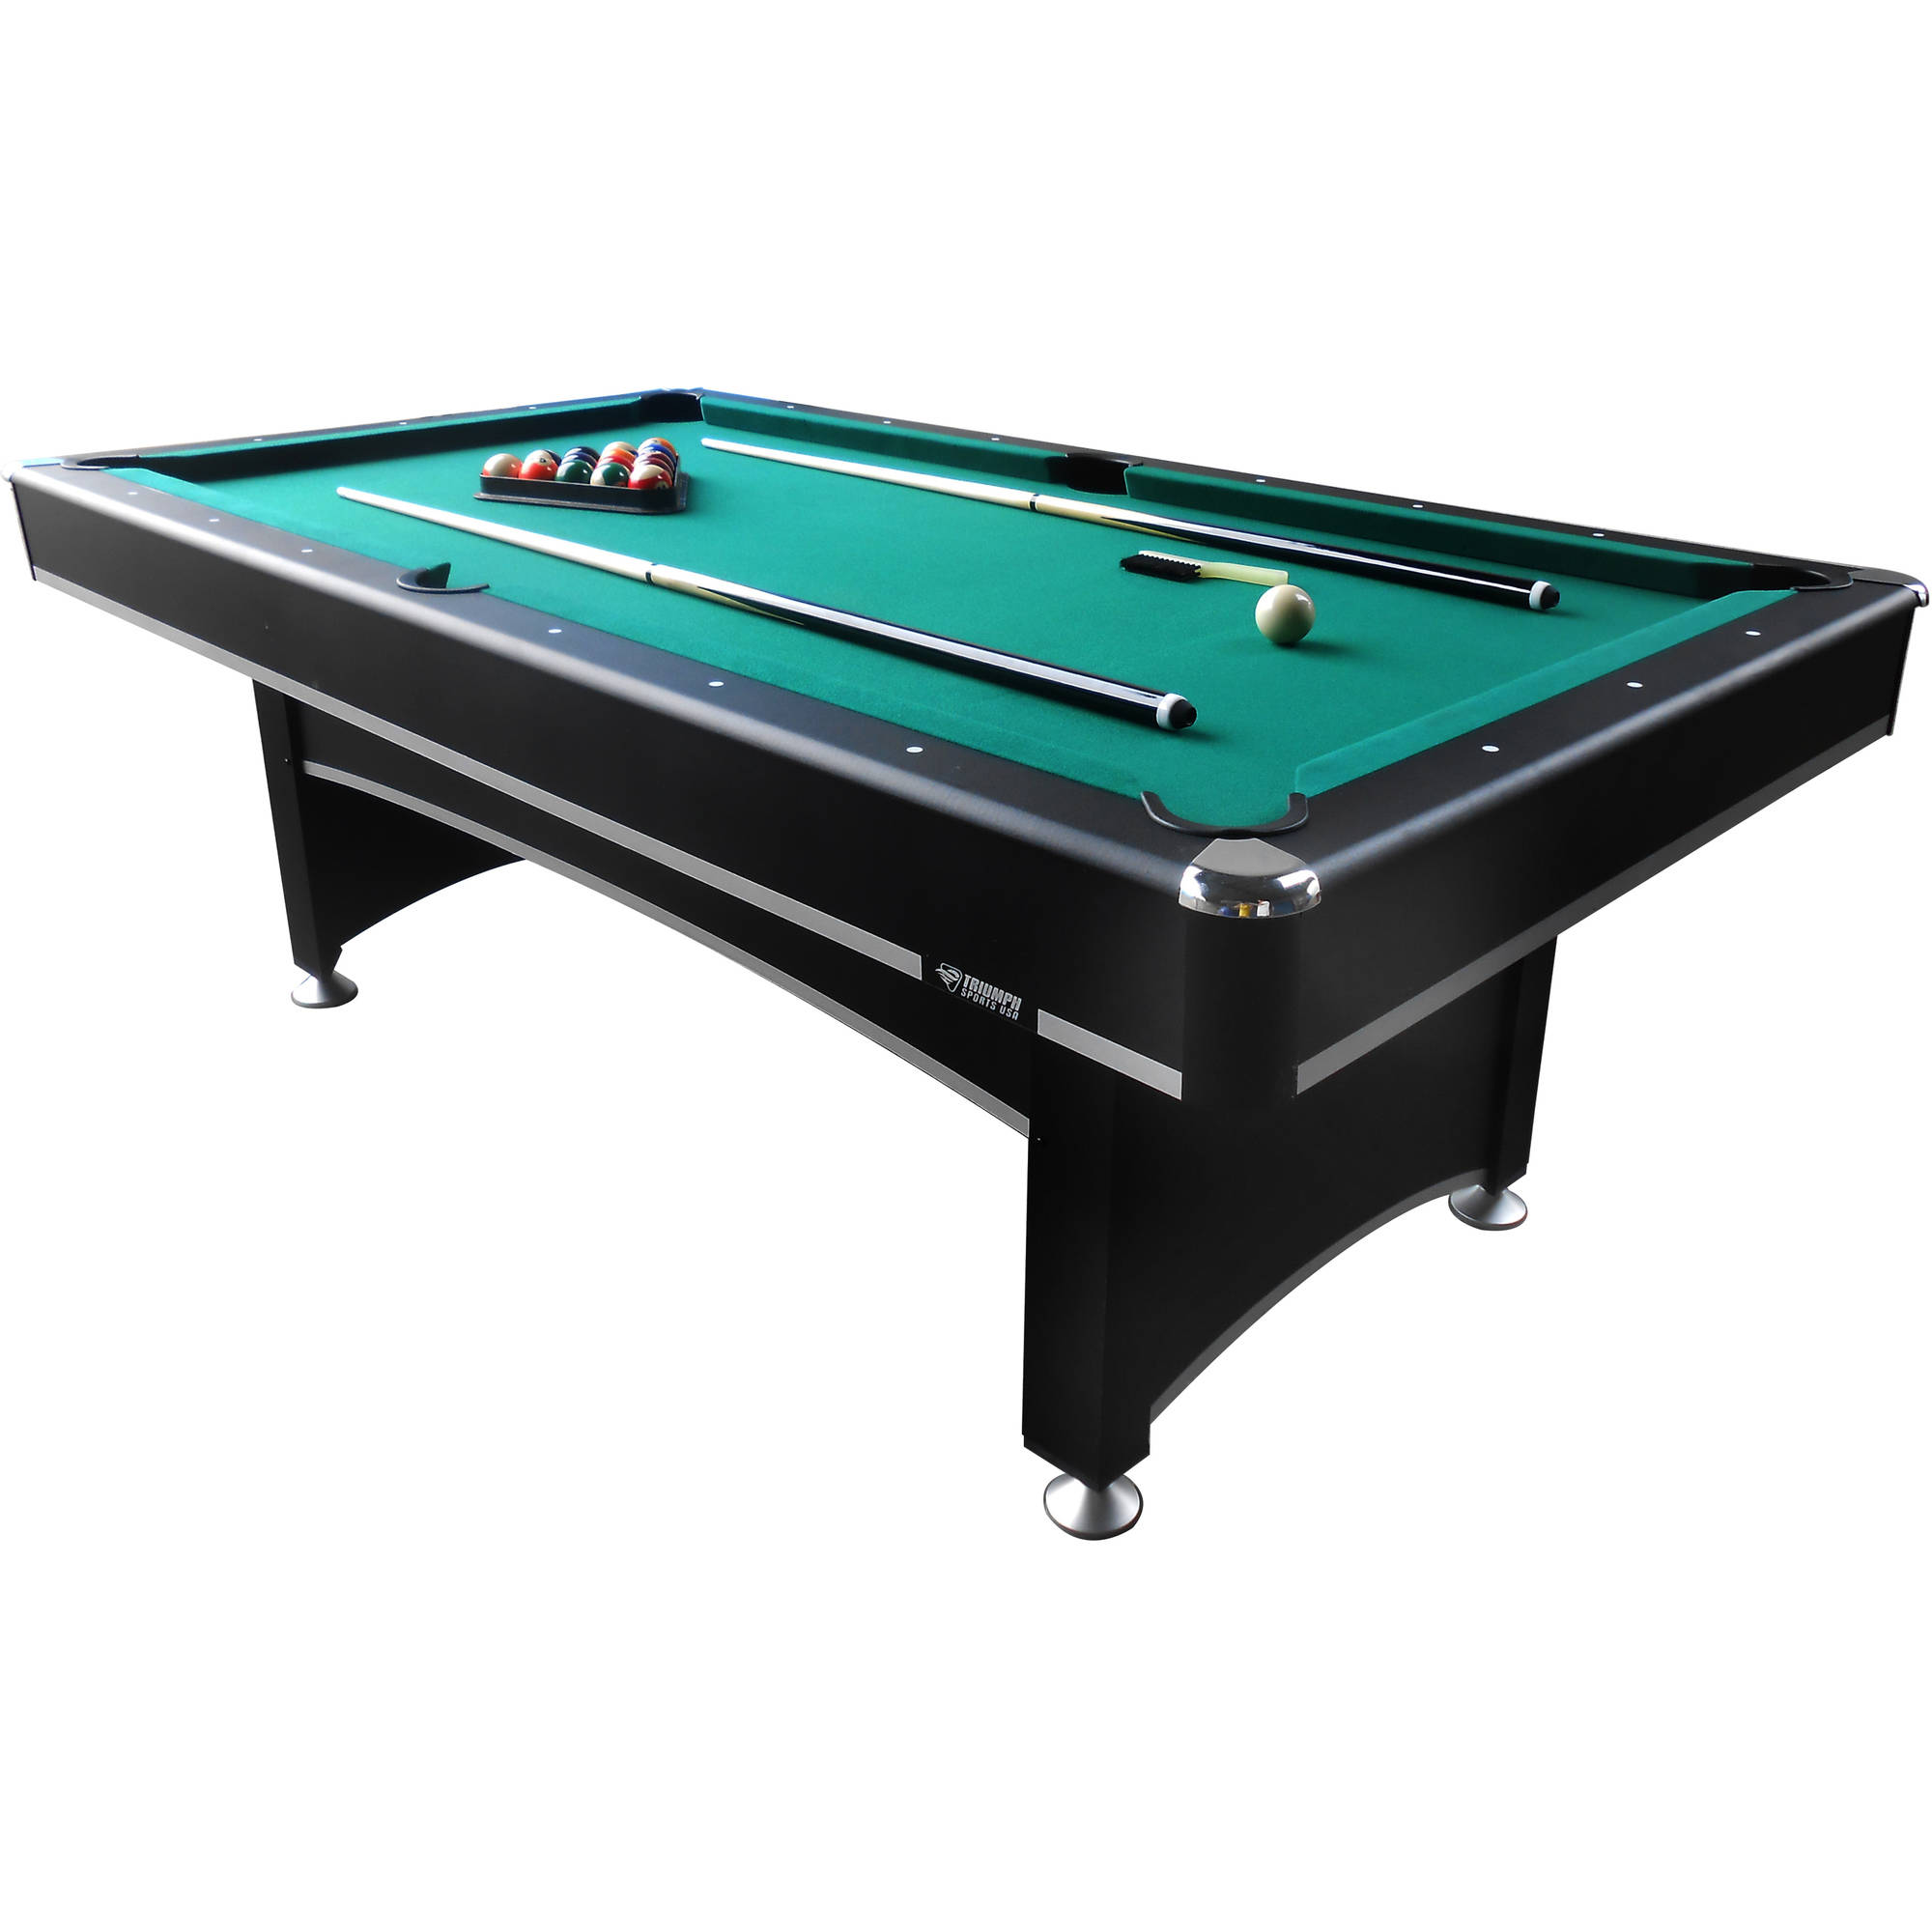 "Triumph 84"" Phoenix Billiard Table with Table Tennis Top"